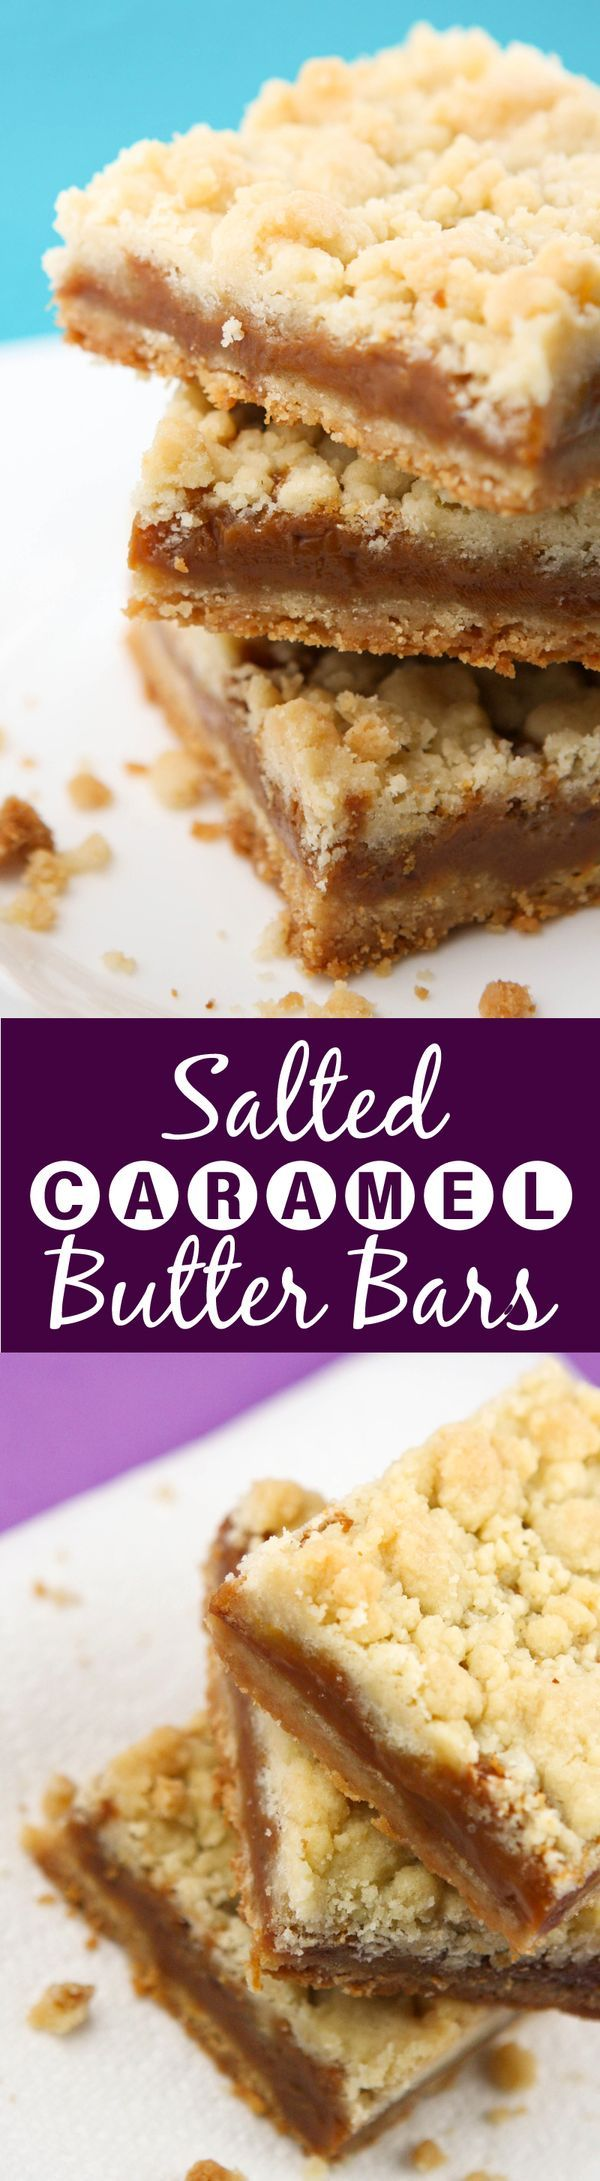 Salted Caramel Butter Bars | Do I really need to tell you that these are to-die-for?! Best desserts bars EVER.